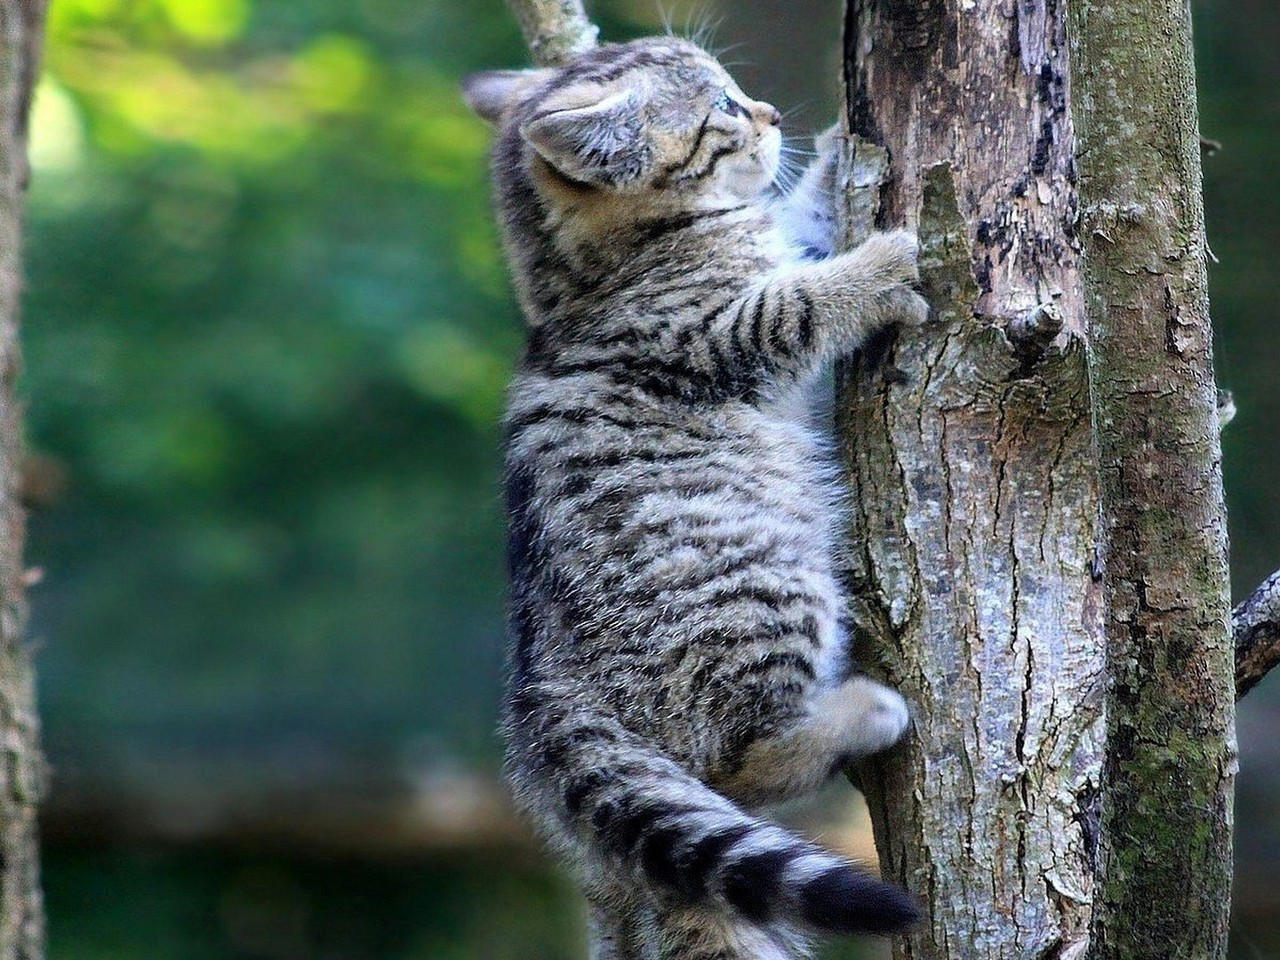 I Want To Download Cute Wallpapers Kitten Climbing A Tree Wallpaper Allwallpaper In 204